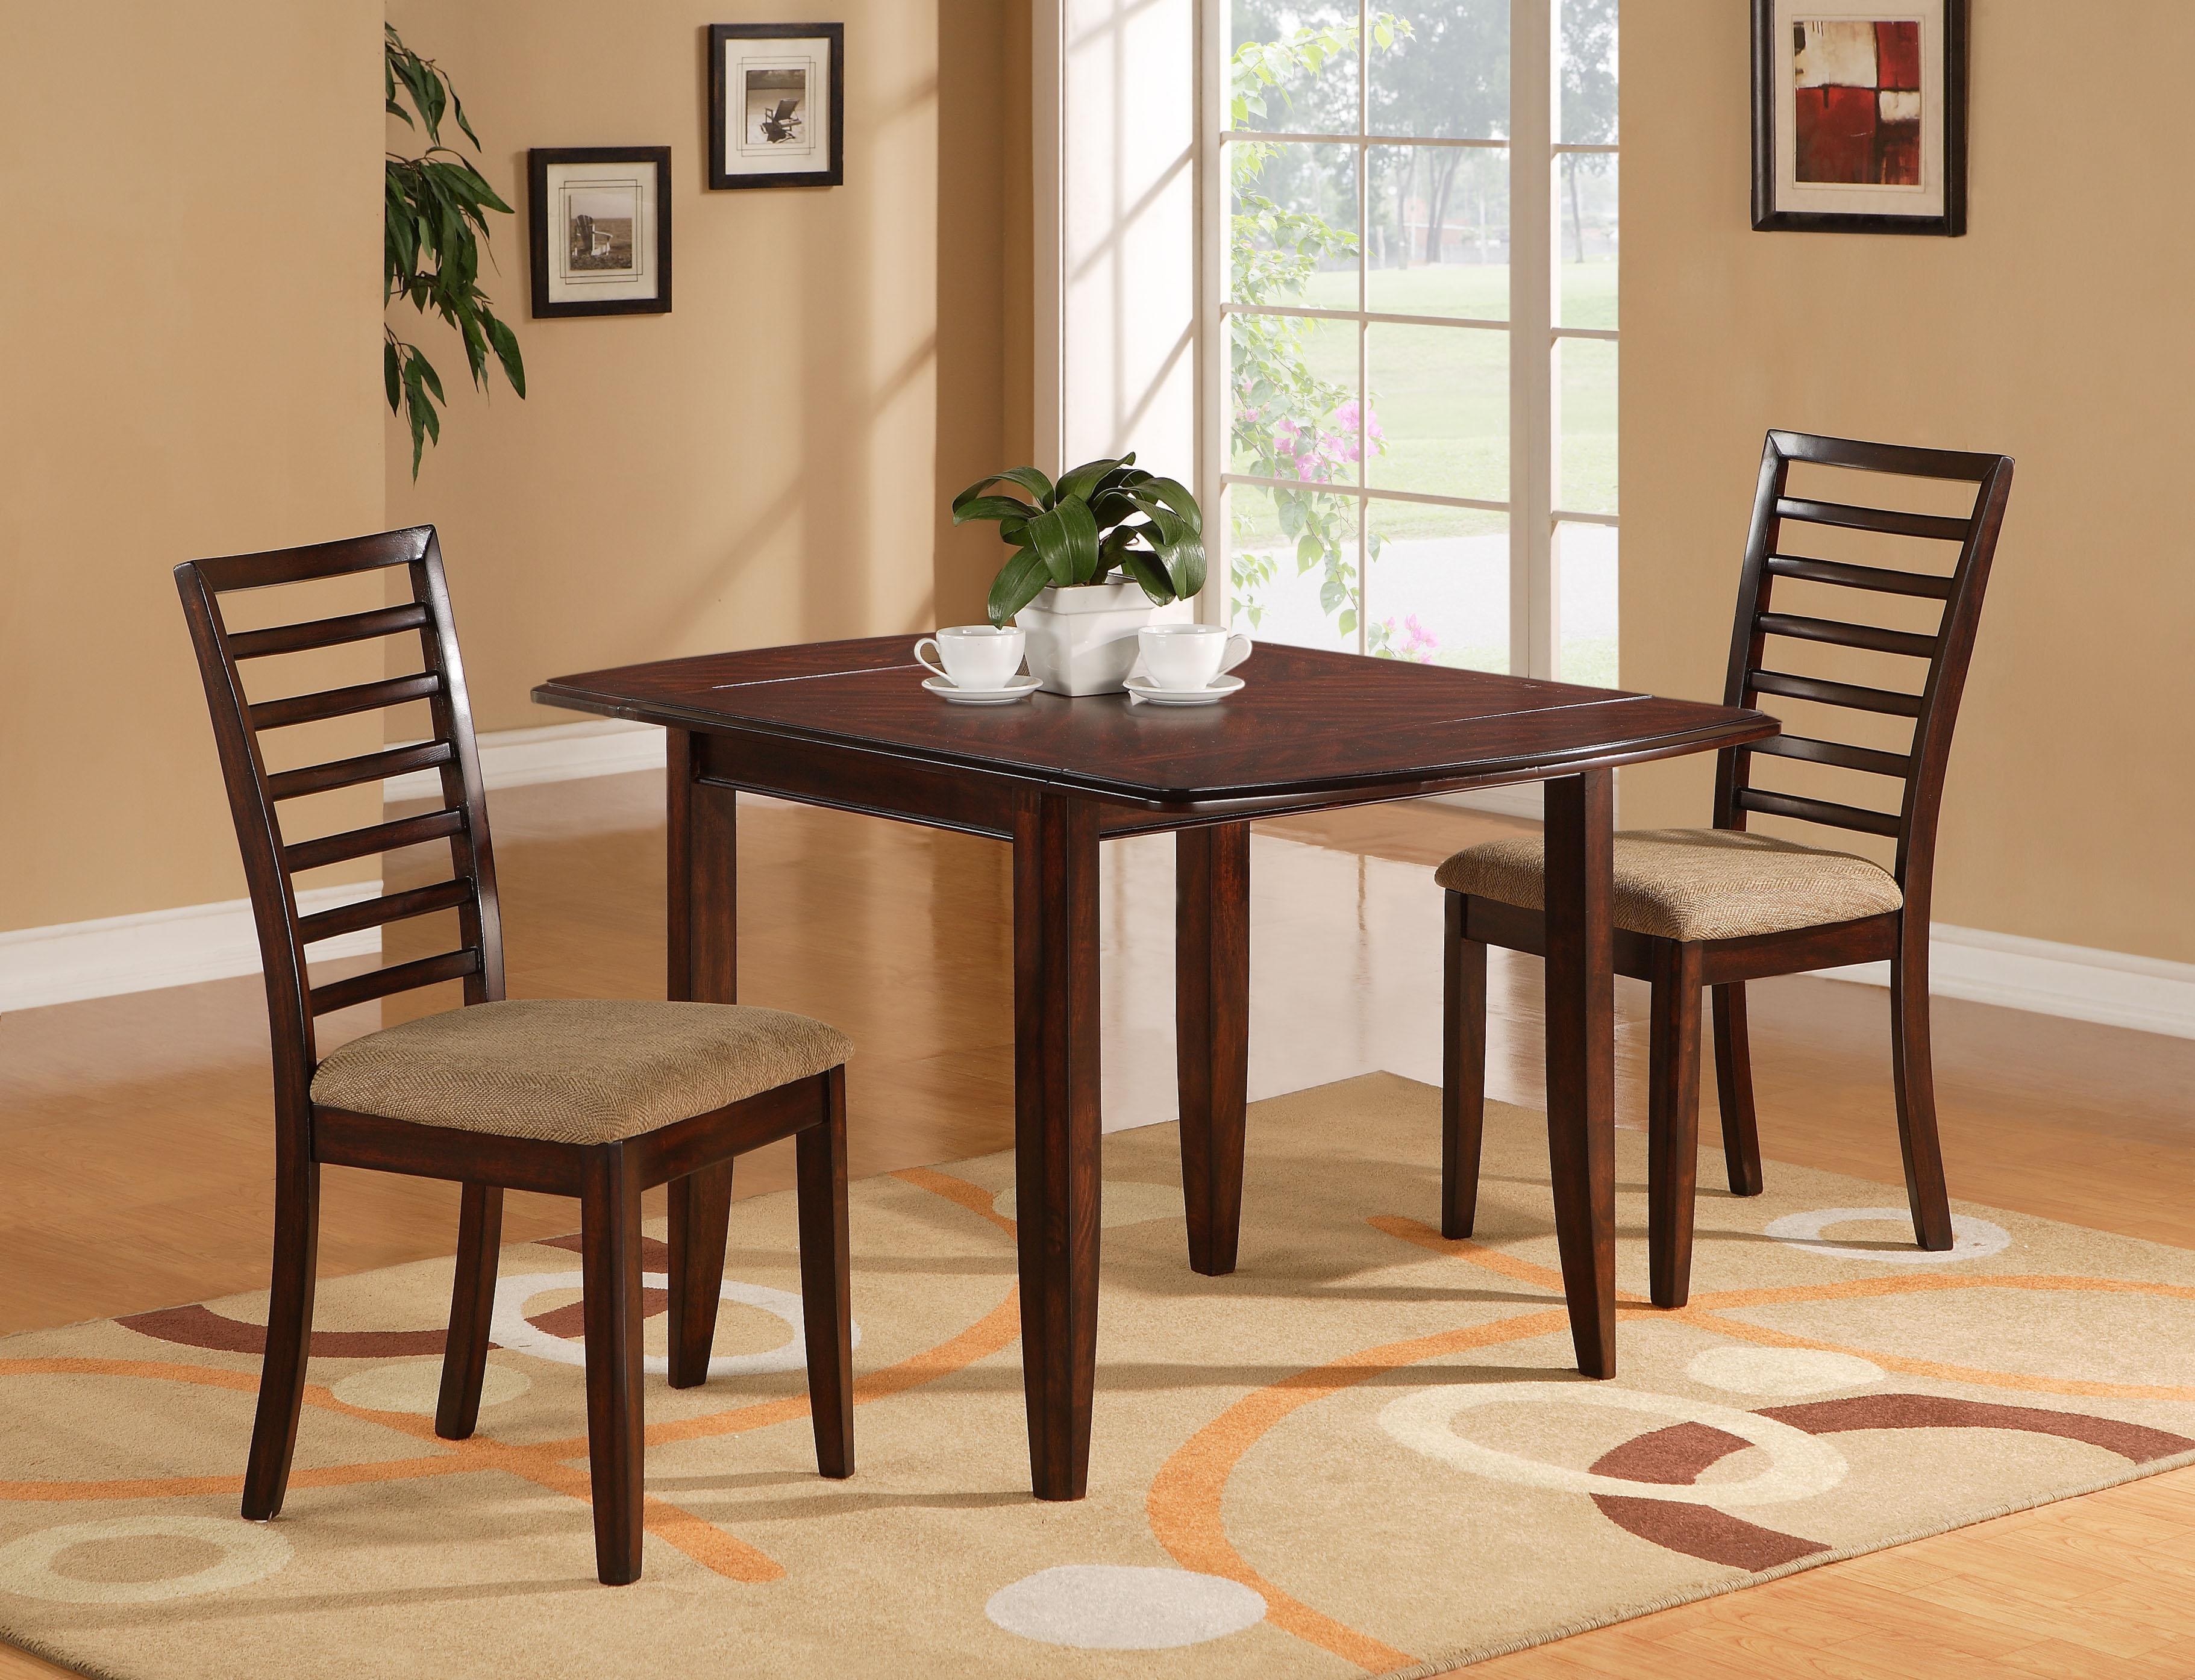 Dining Room Chair Sets Table And Chair Sets In Spokane Kennewick Tri Cities Wenatchee